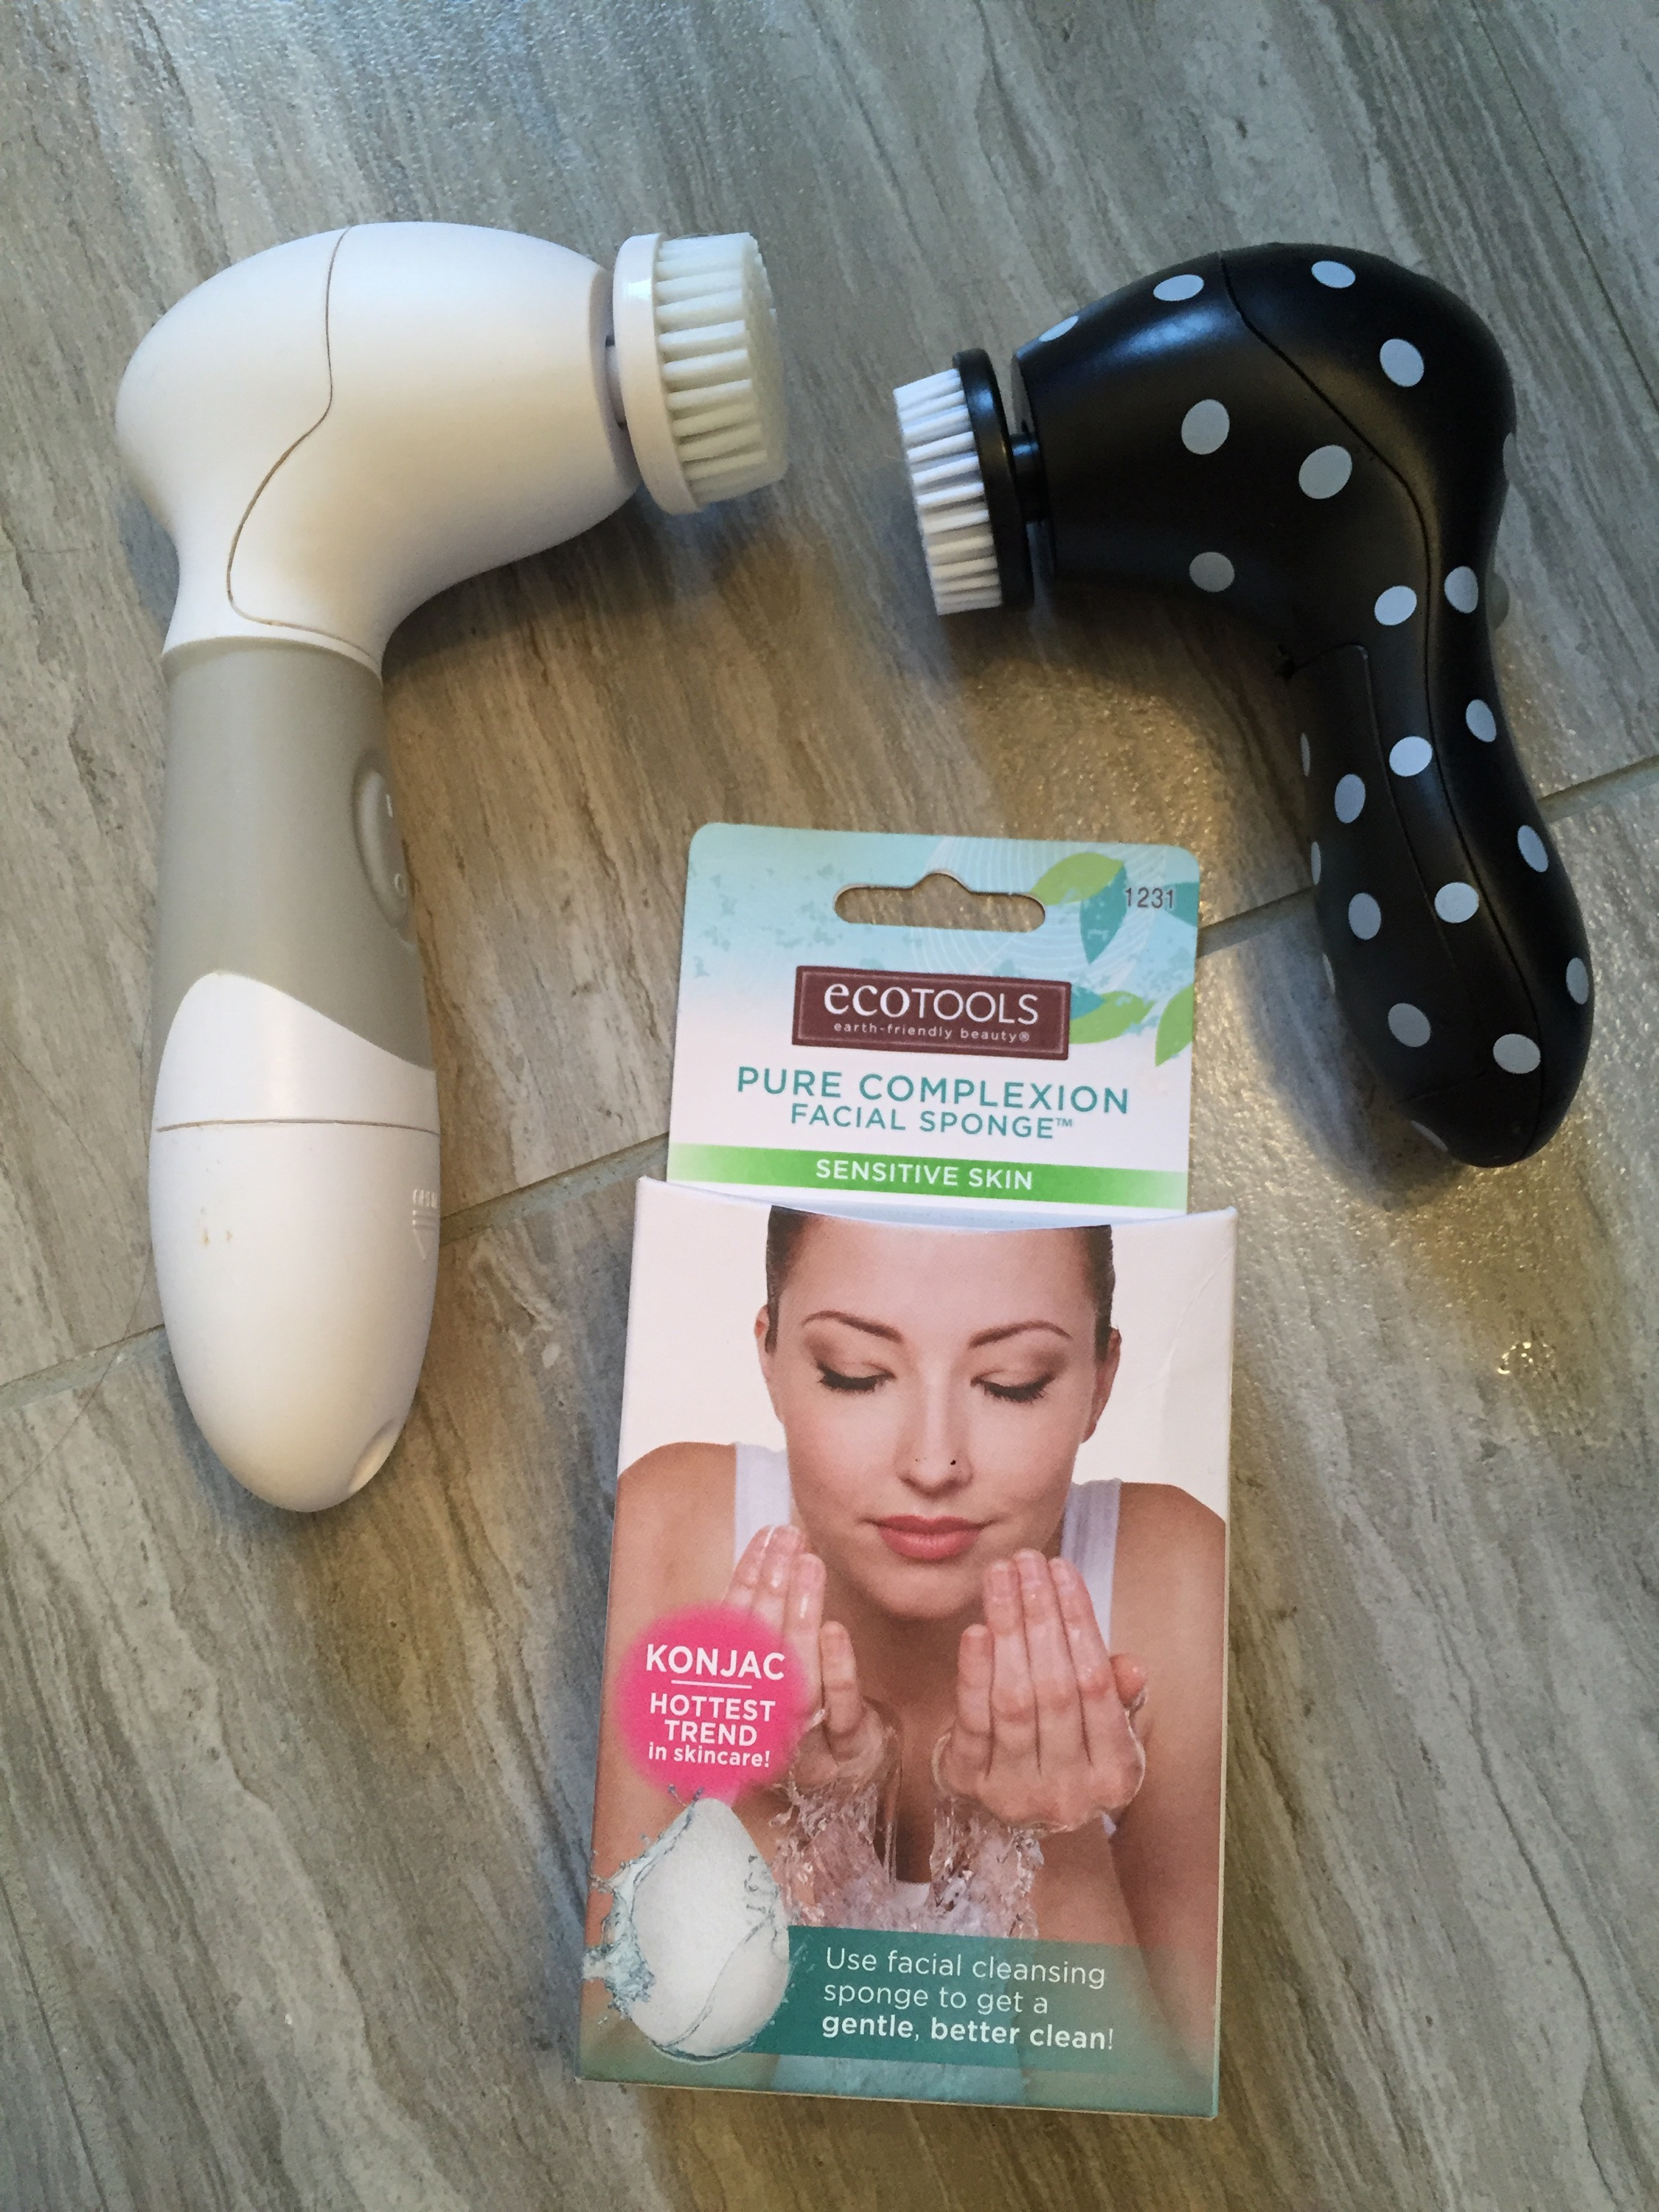 skincare tools, facial cleansing brushes